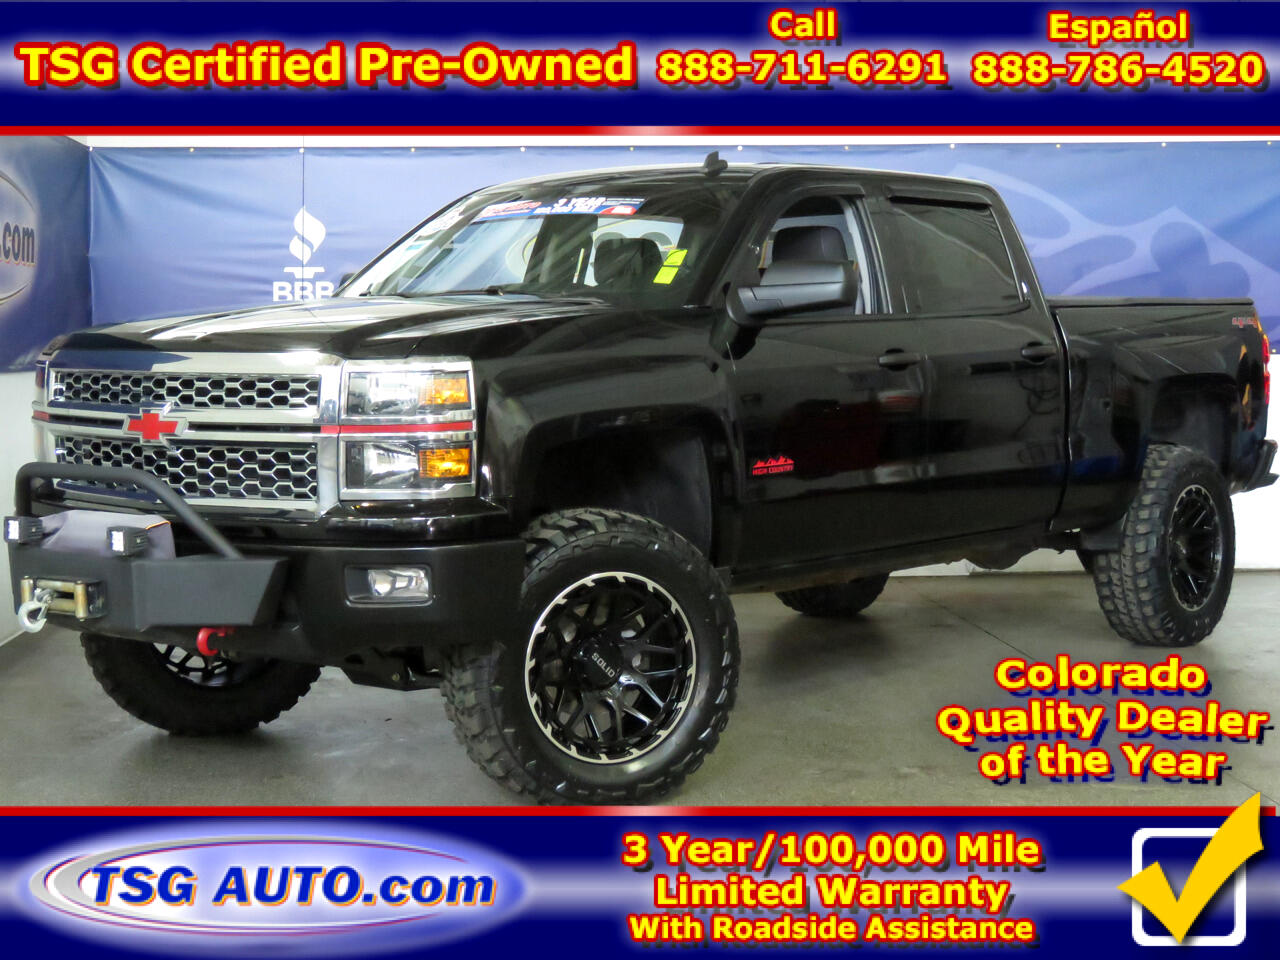 2014 Chevrolet Silverado 1500 LT Crew Cab 4WD W/Cstm Lift/Wheels/Tires/Winch